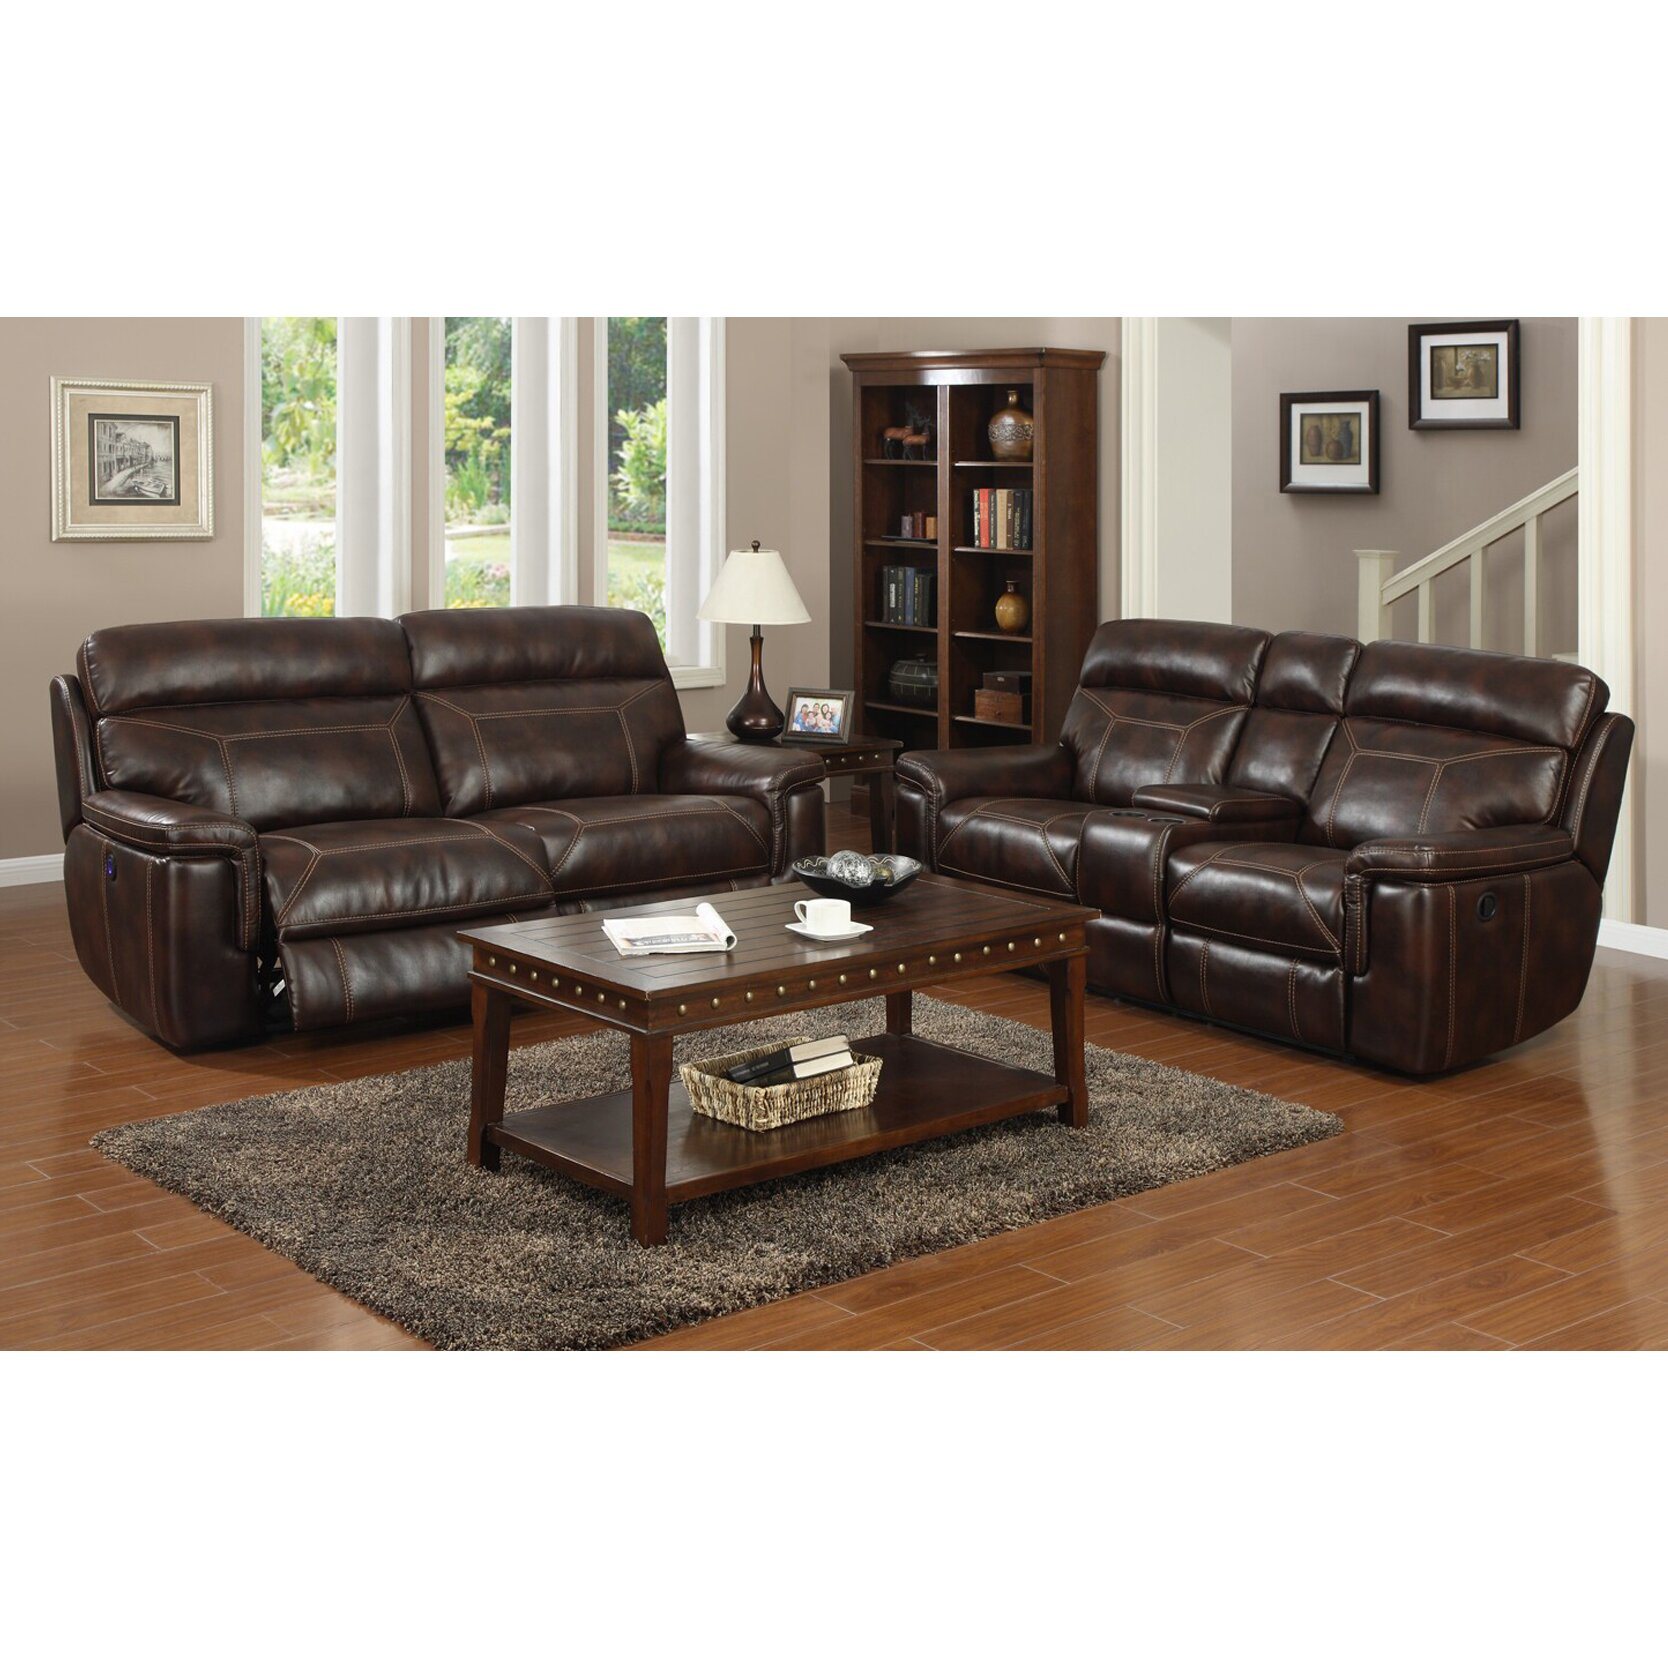 E Motion Furniture Jonathan Living Room Collection Reviews